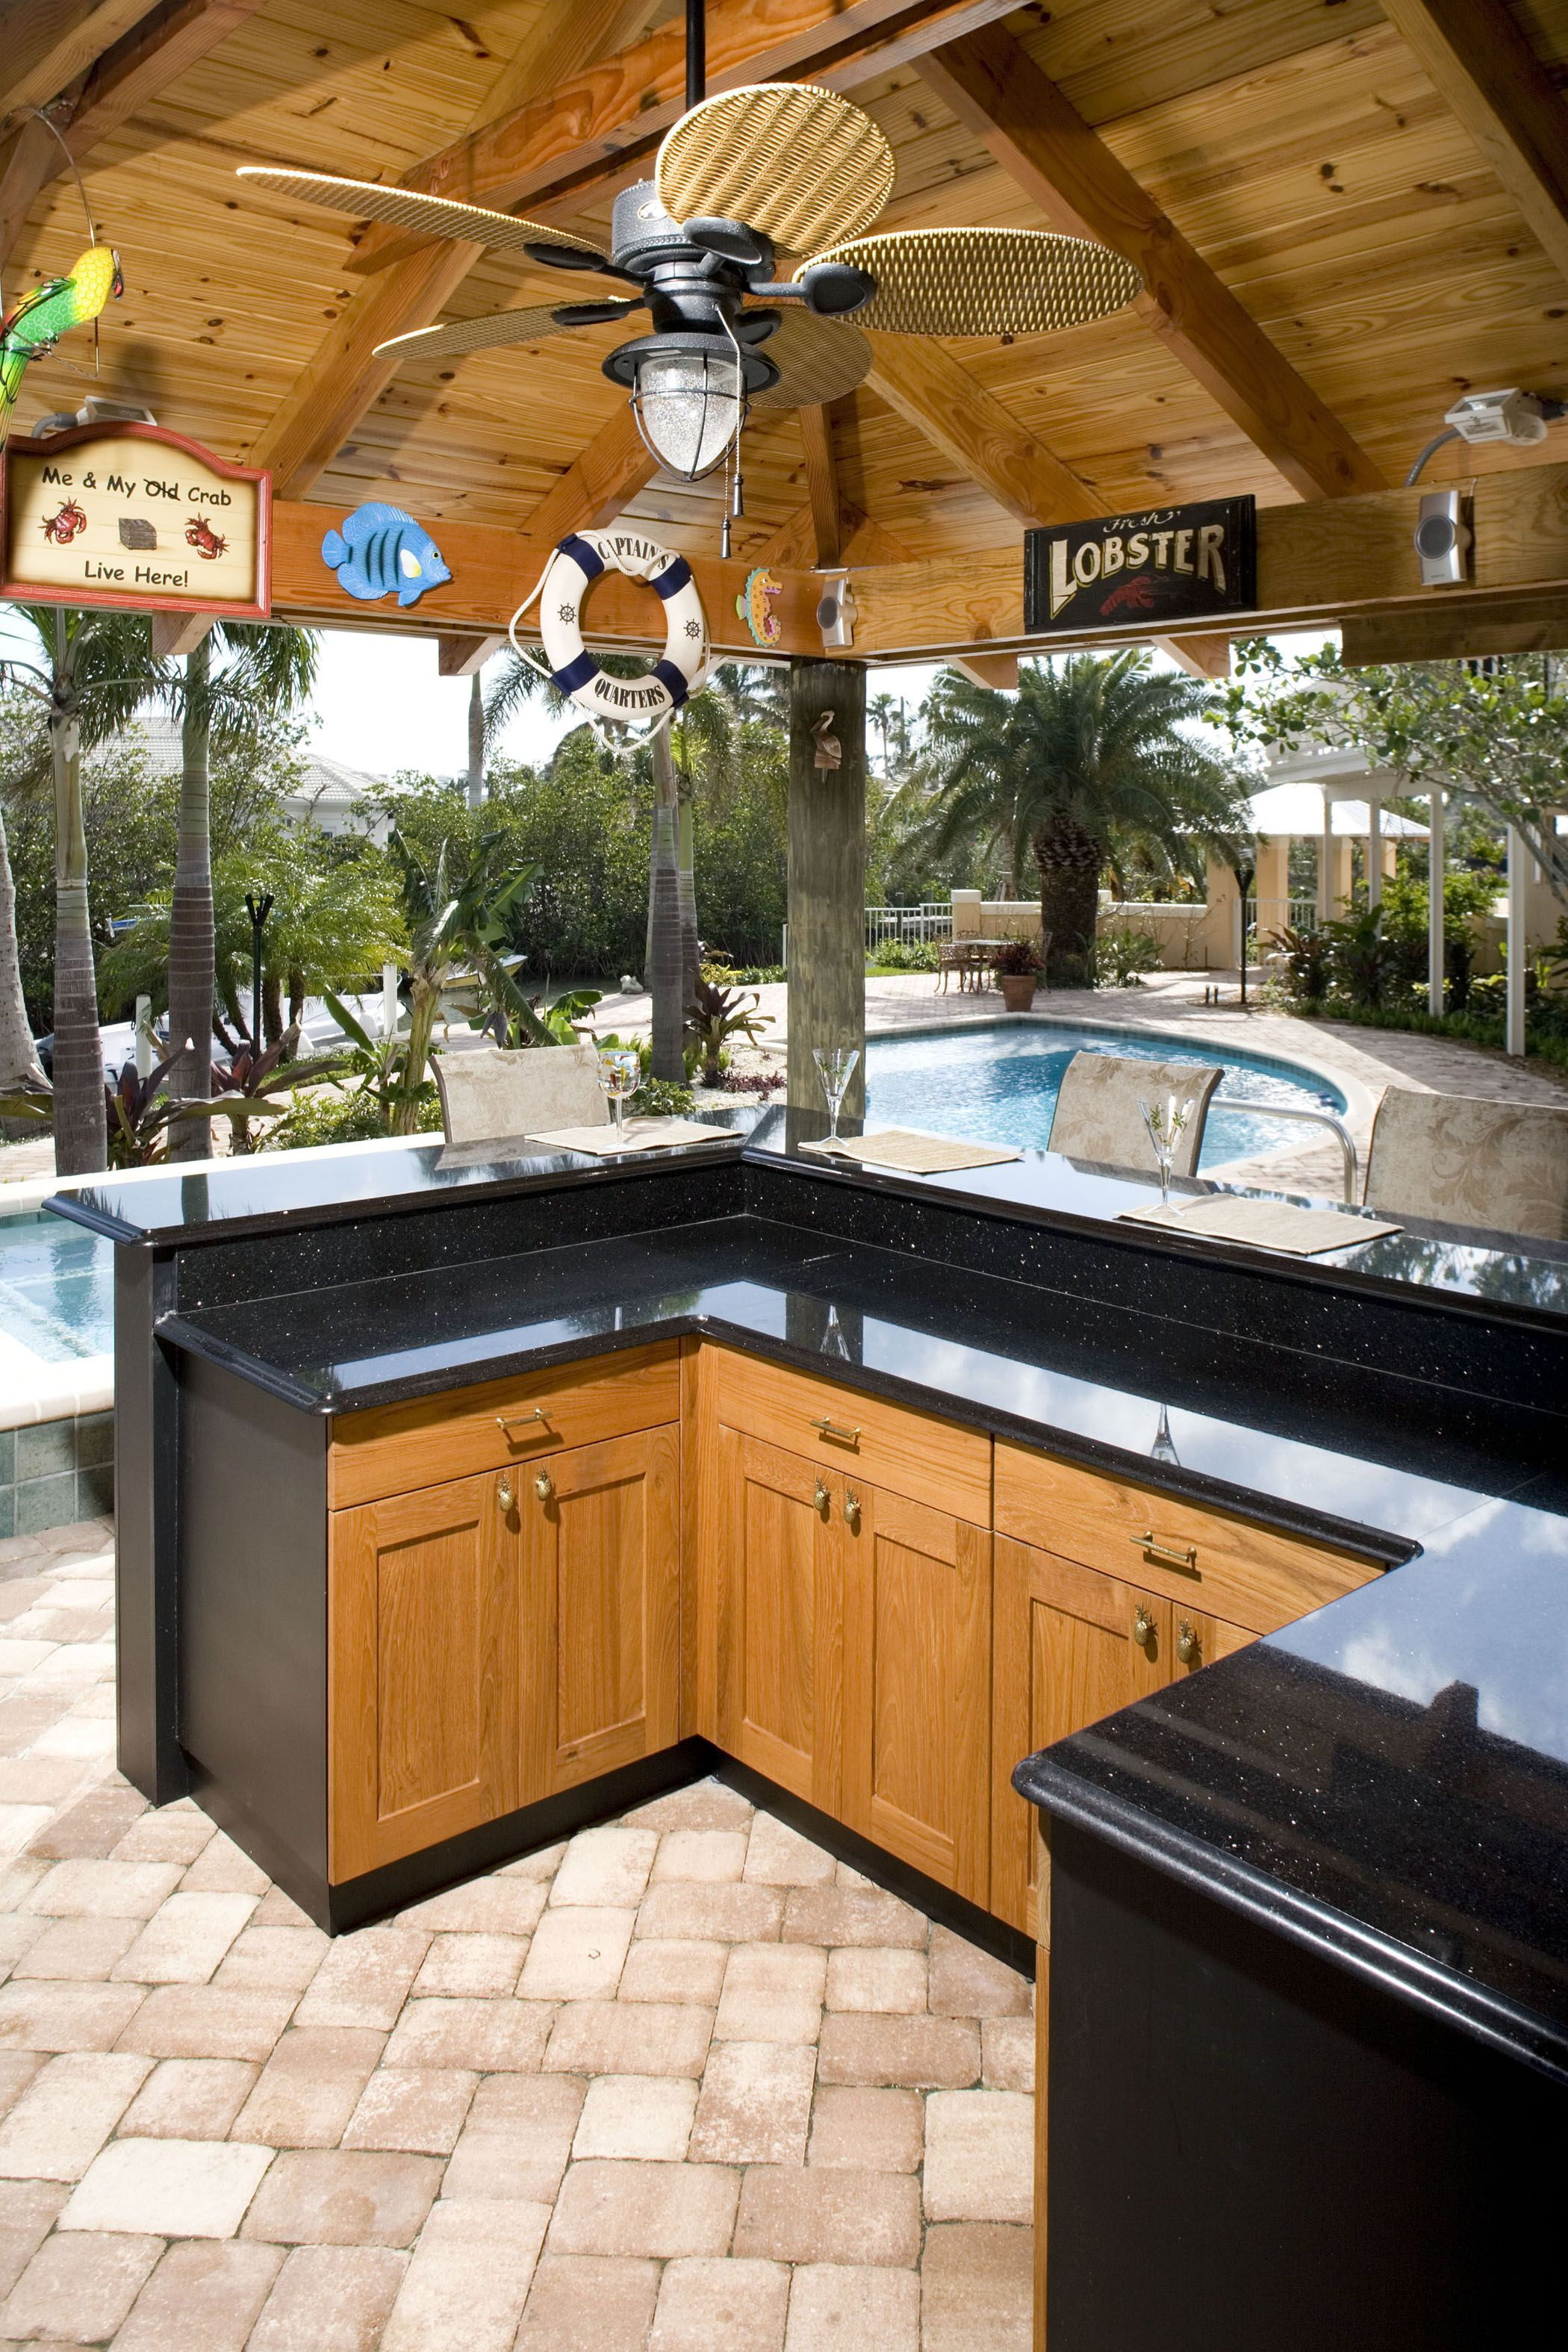 Outdoor kitchen outdoor kitchen ideas pinterest Outdoor kitchen designs